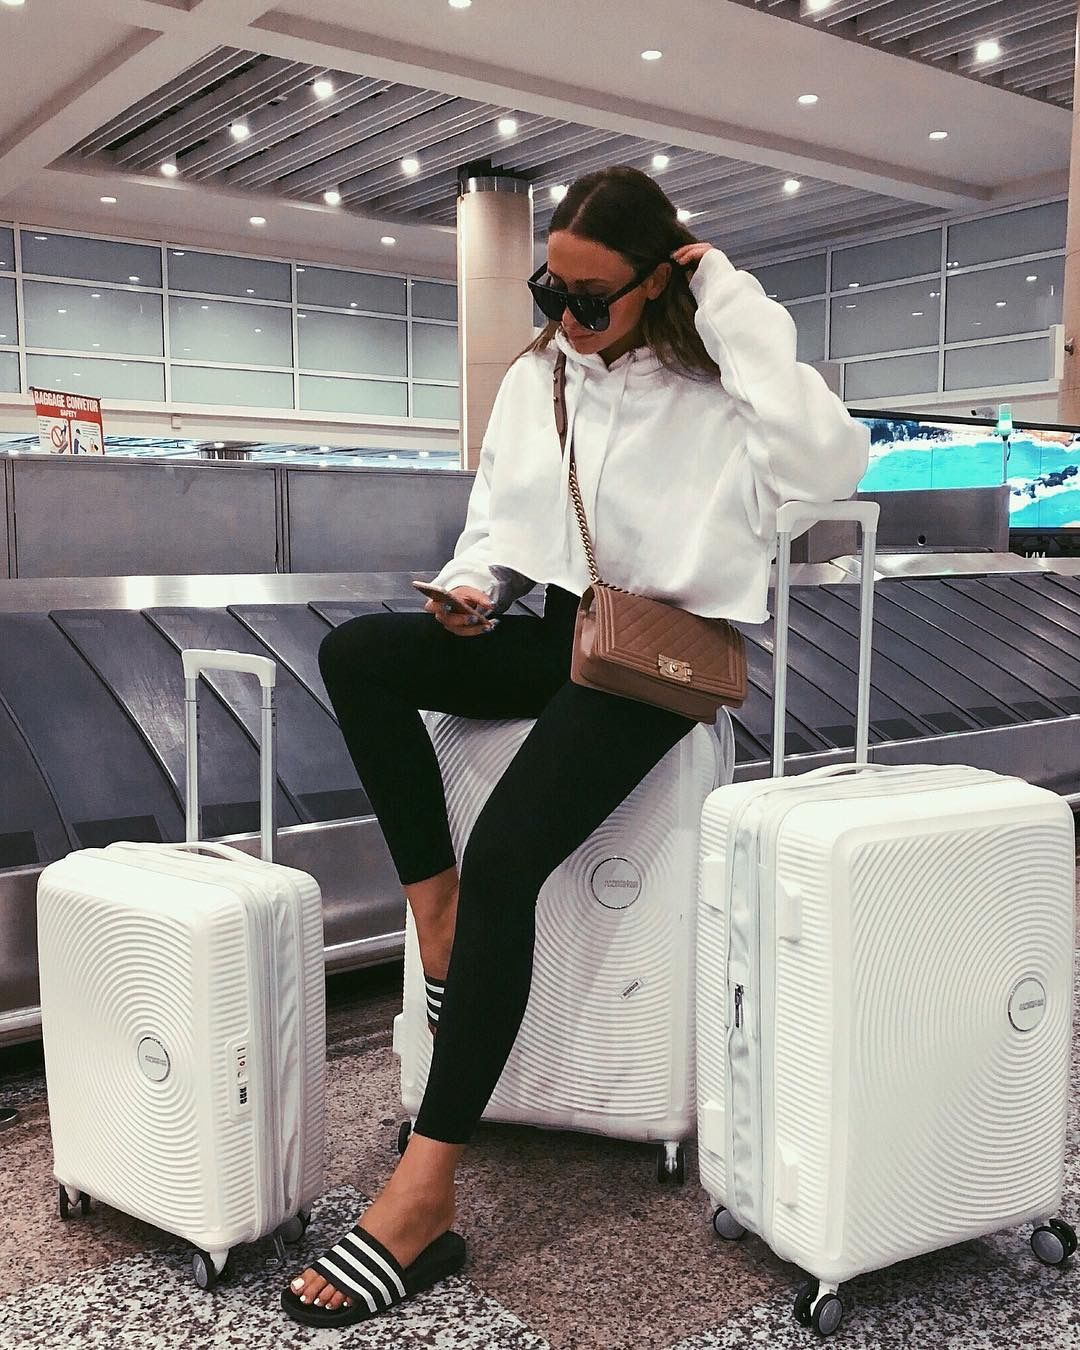 Www Maisonjaccollection Com Fashion Clothing Activewear Shoes Swimwear Shipped Globally To Your Door Airport Outfit Fashion Travel Outfit Flight Outfit